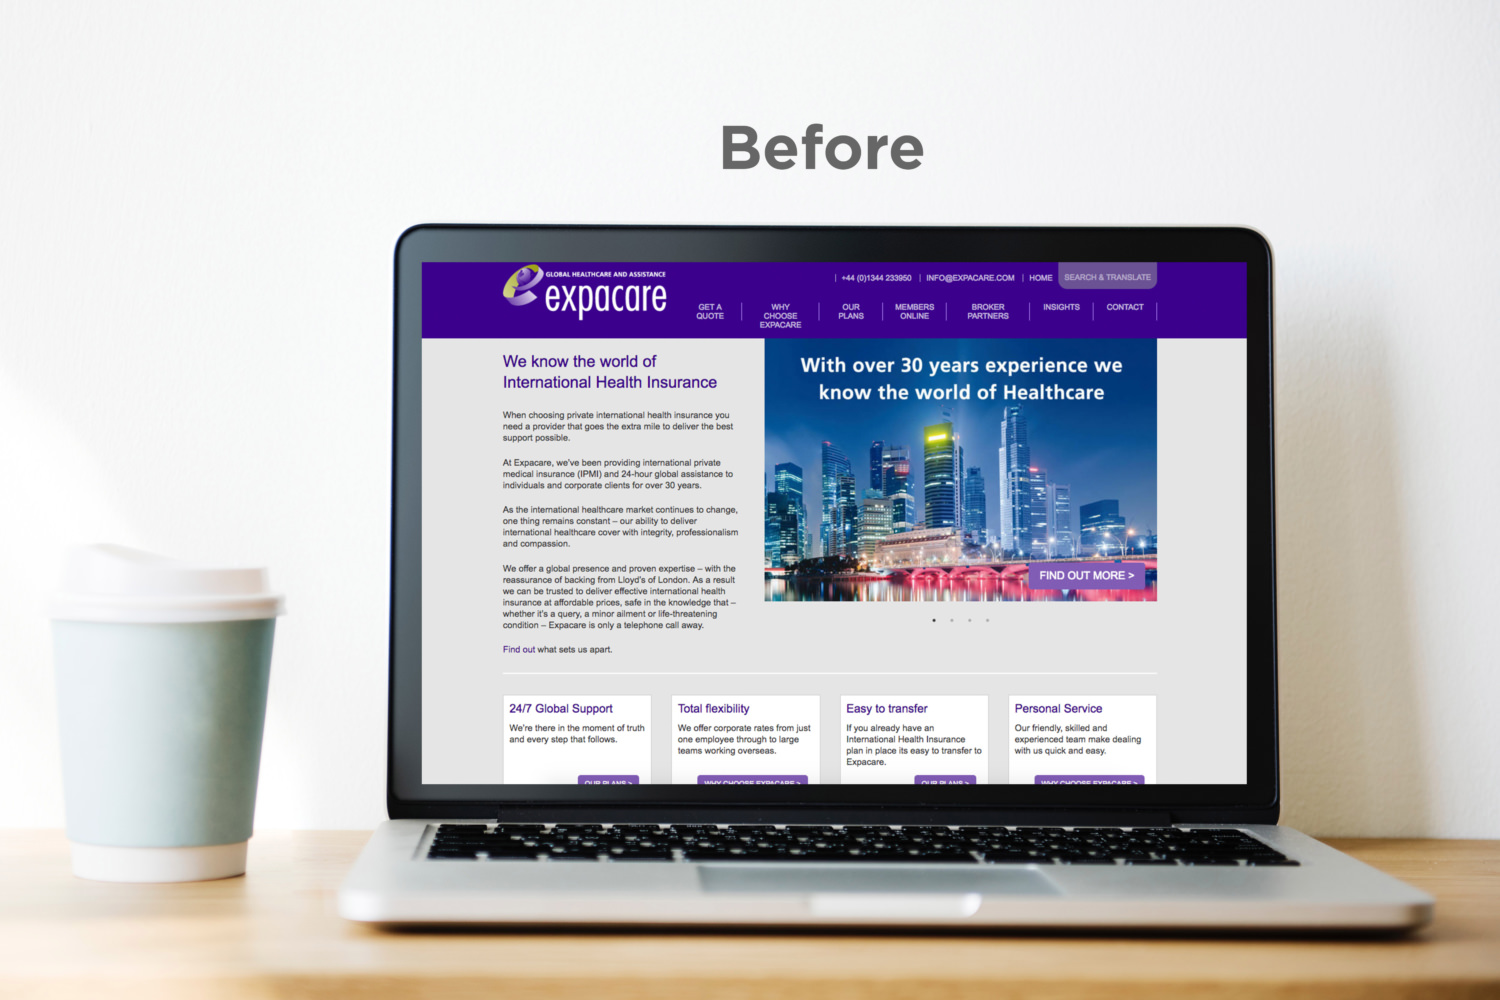 Expacare - Before